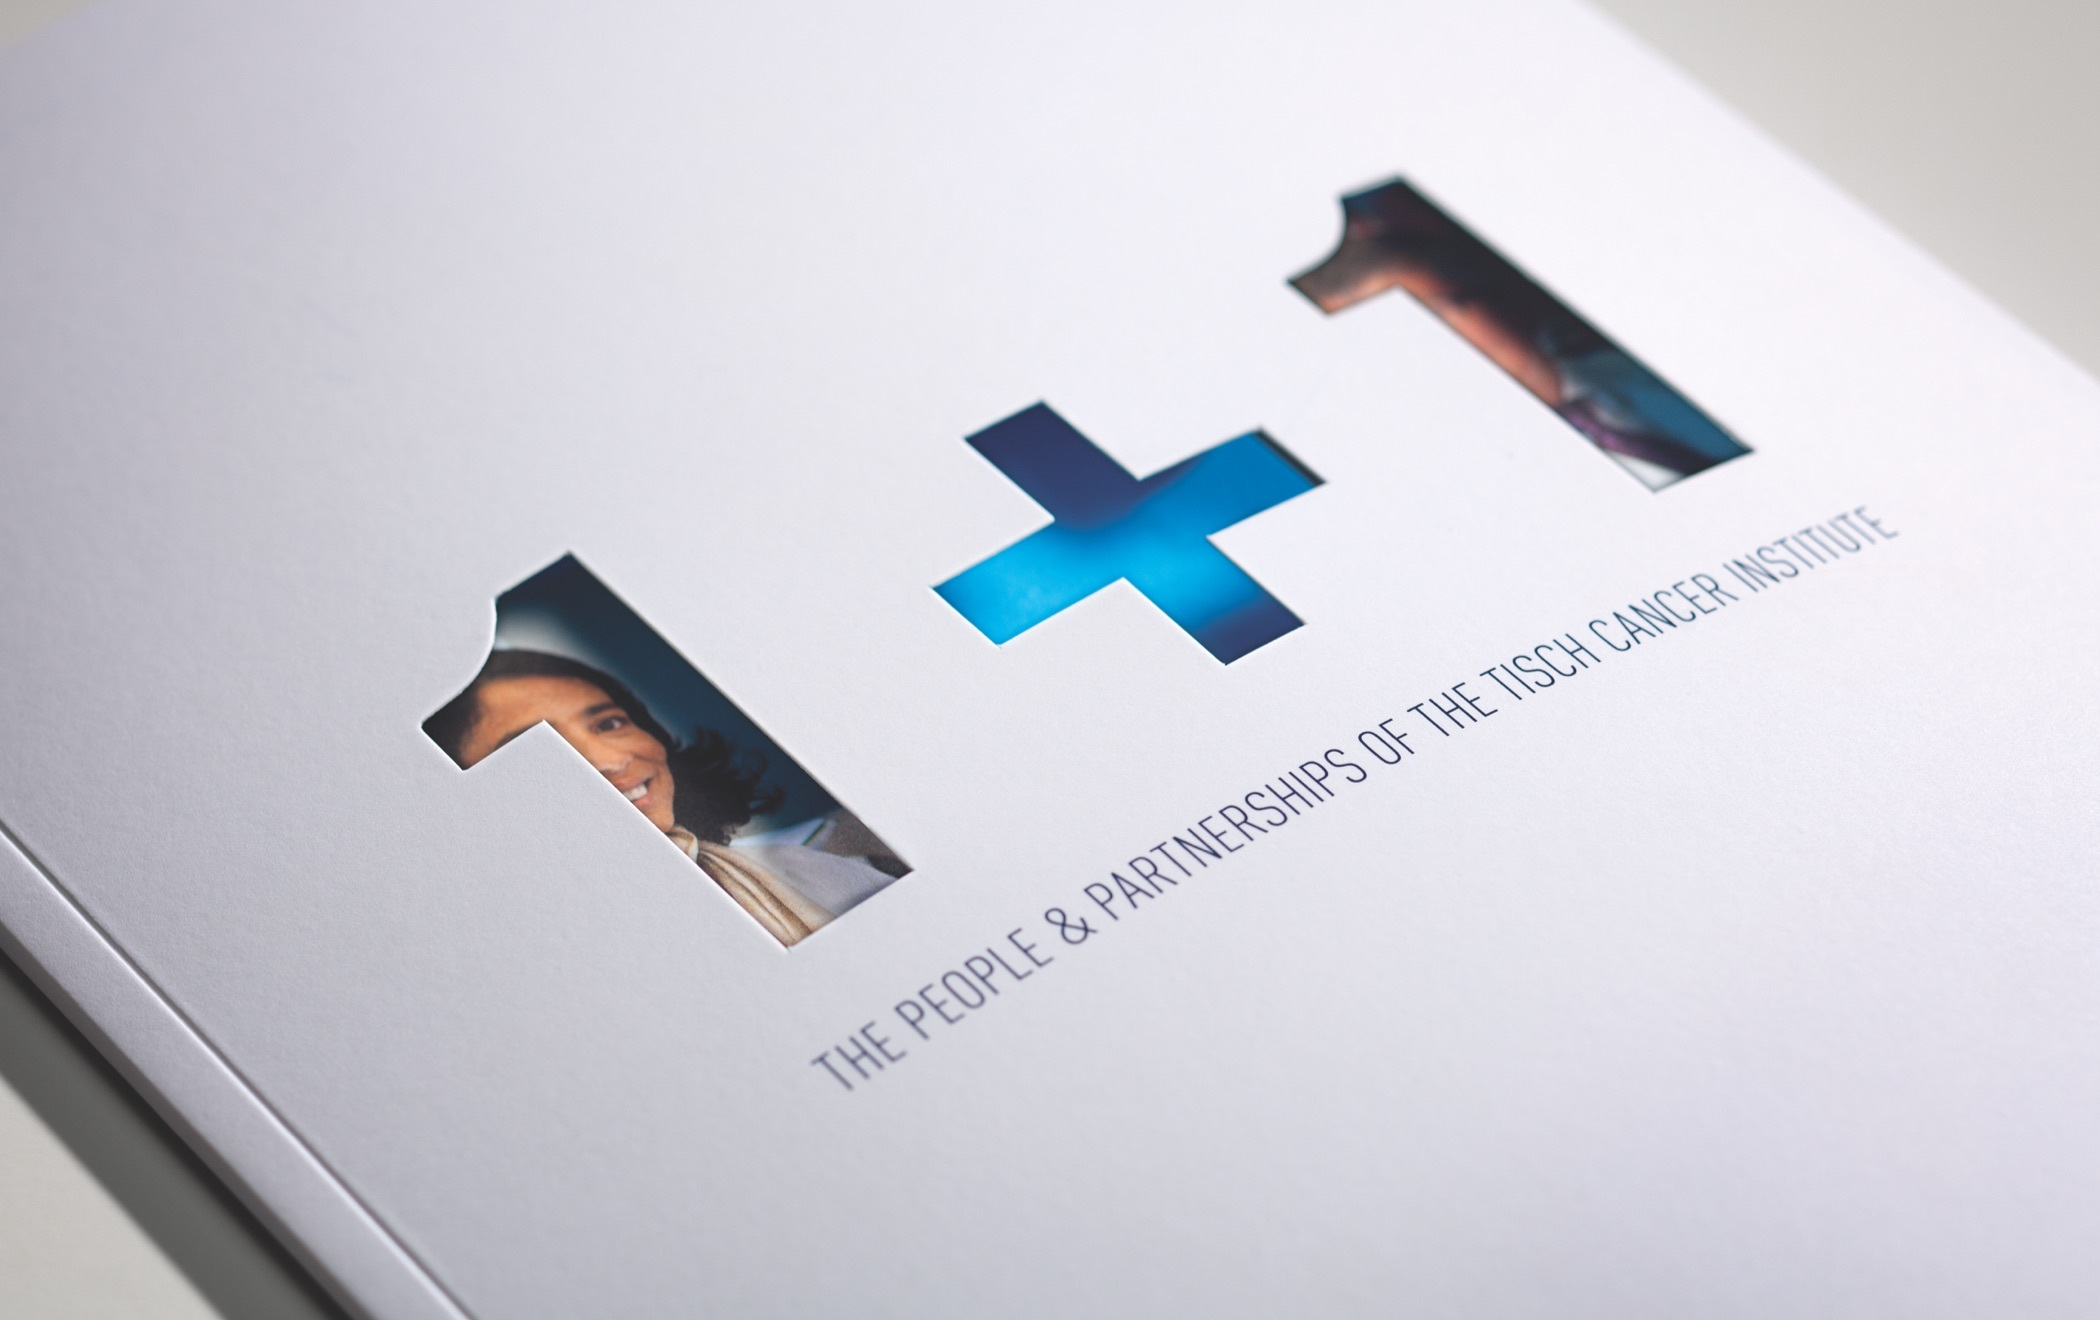 The title text one plus one die cut to reveal a photograph below on the cover of the Tisch Cancer Institute 2011 annual report.